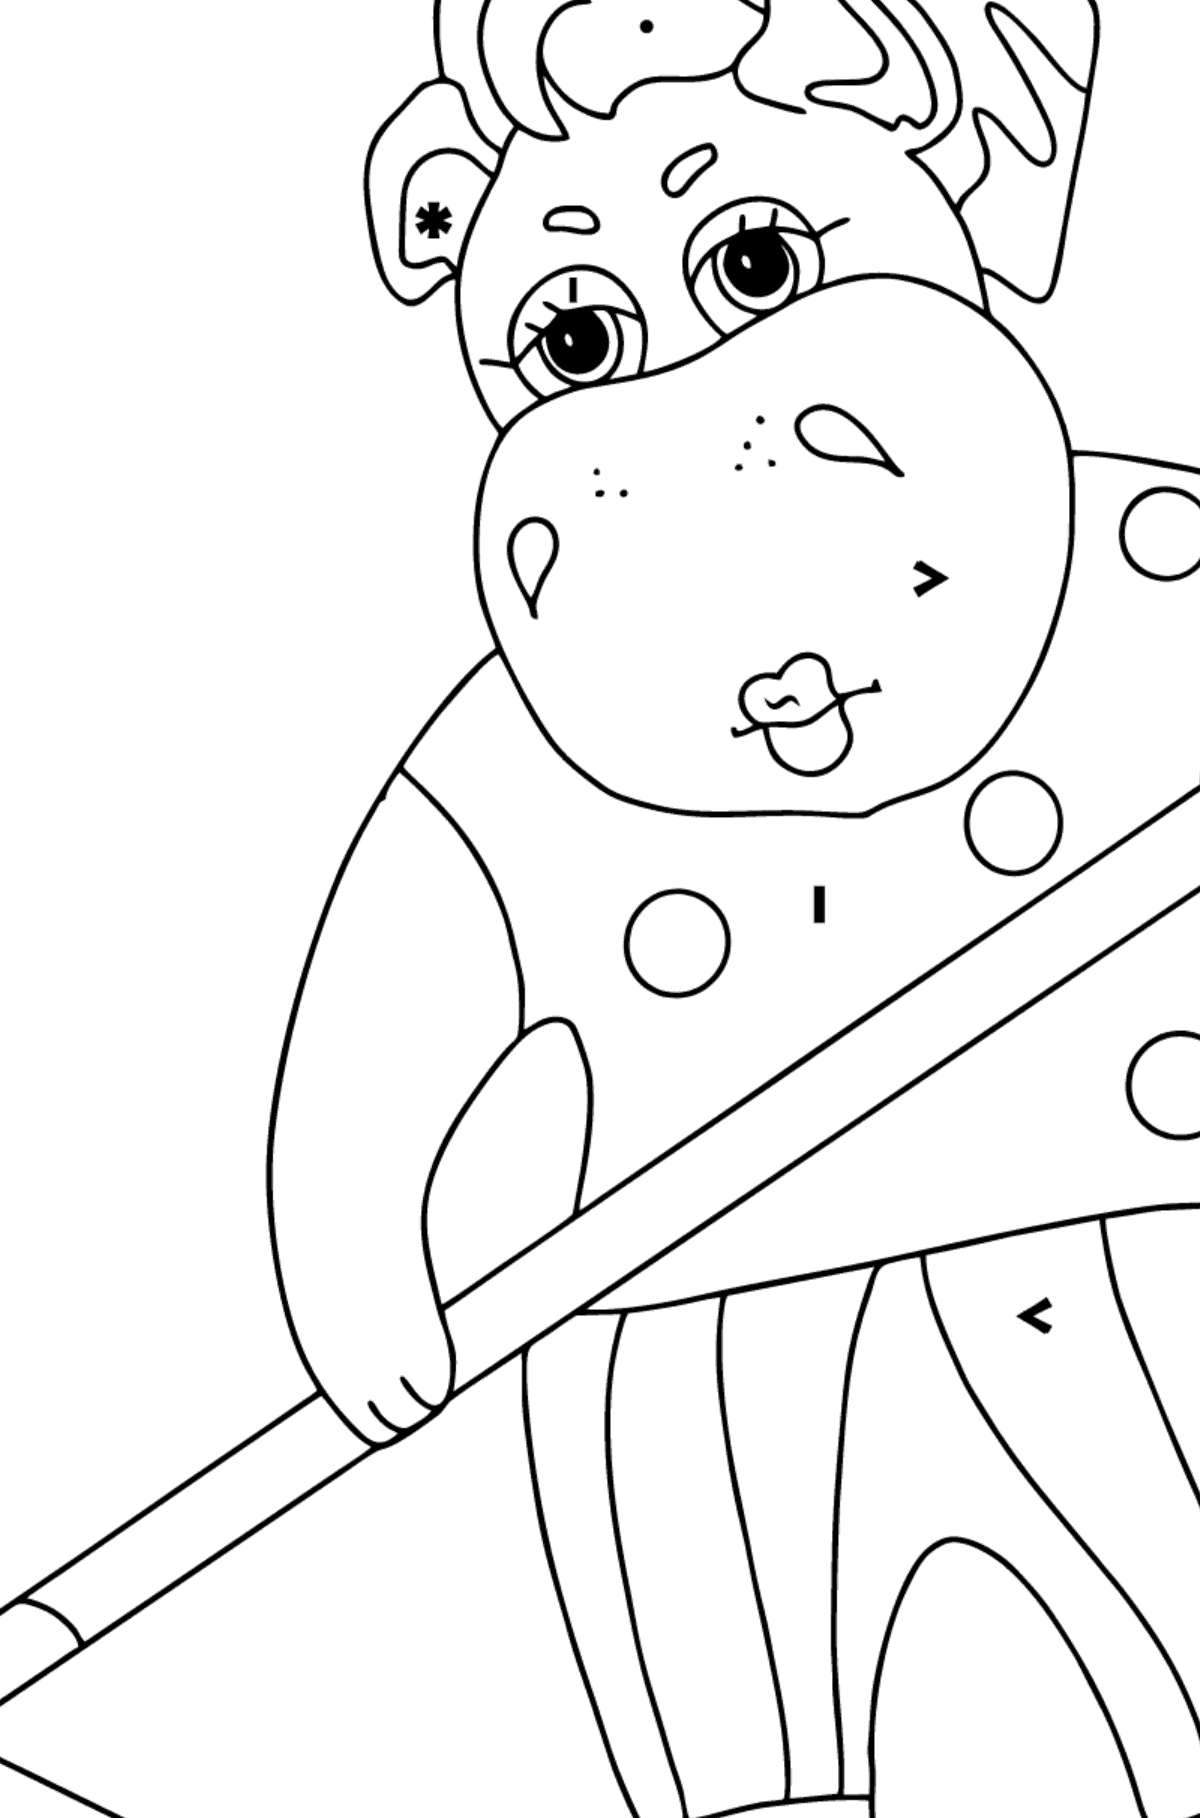 Coloring Page - A Hippo is Collecting Autumn Leaves for Children  - Color by Special Symbols